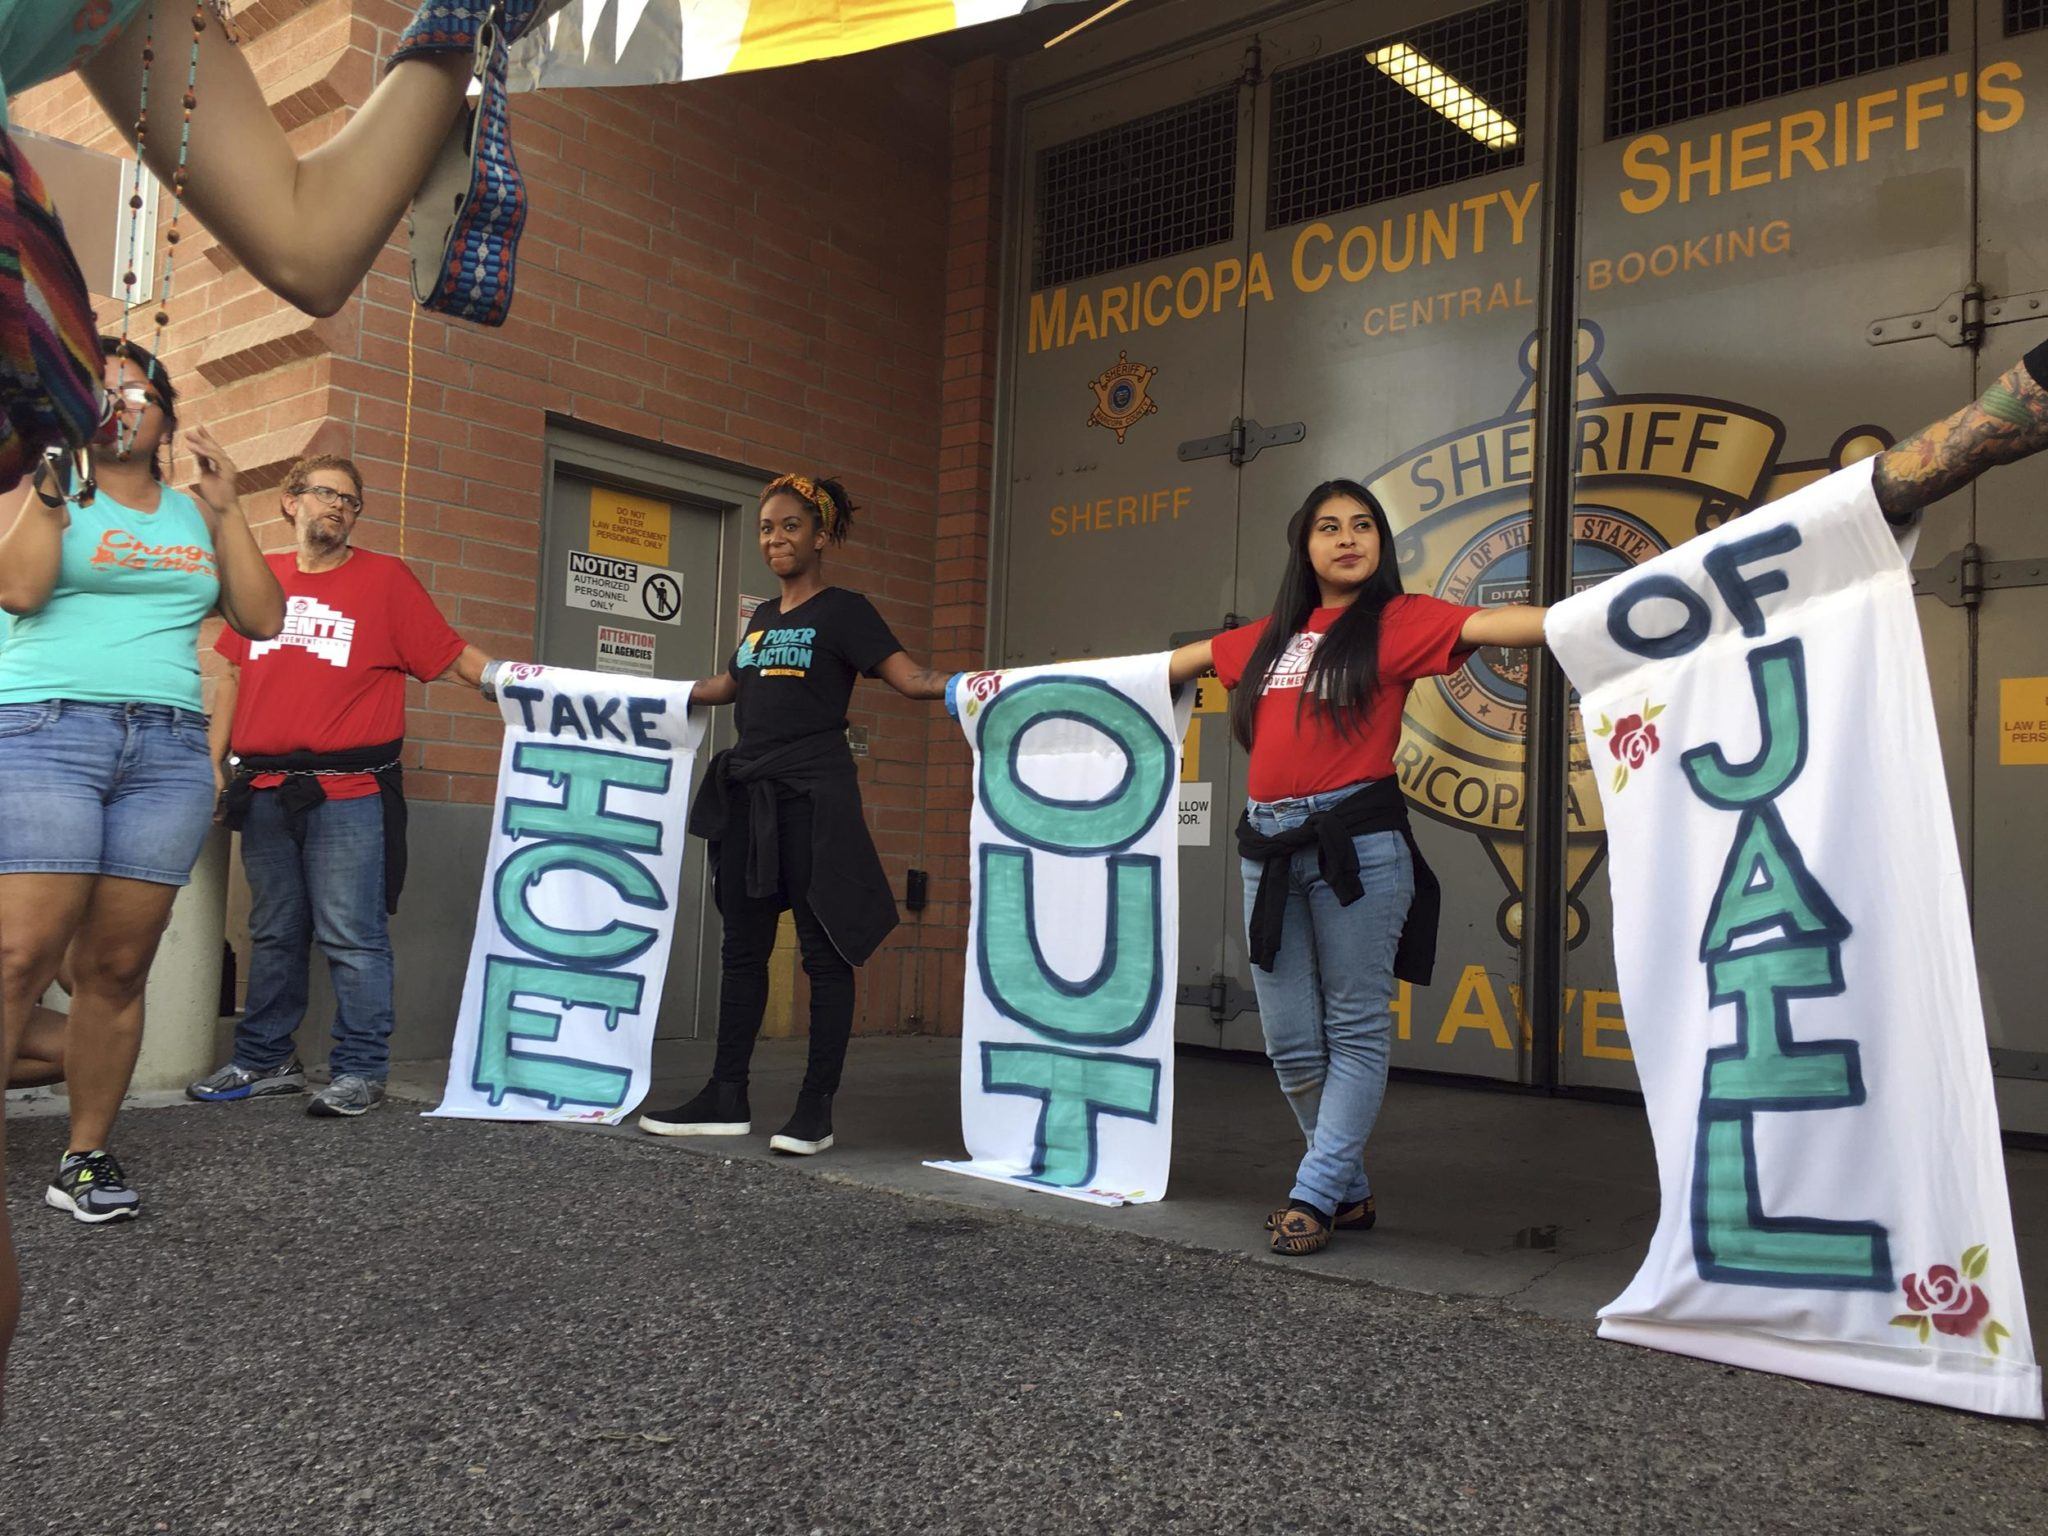 Police Arrest 4 At ICE Protest Outside Arizona Jail